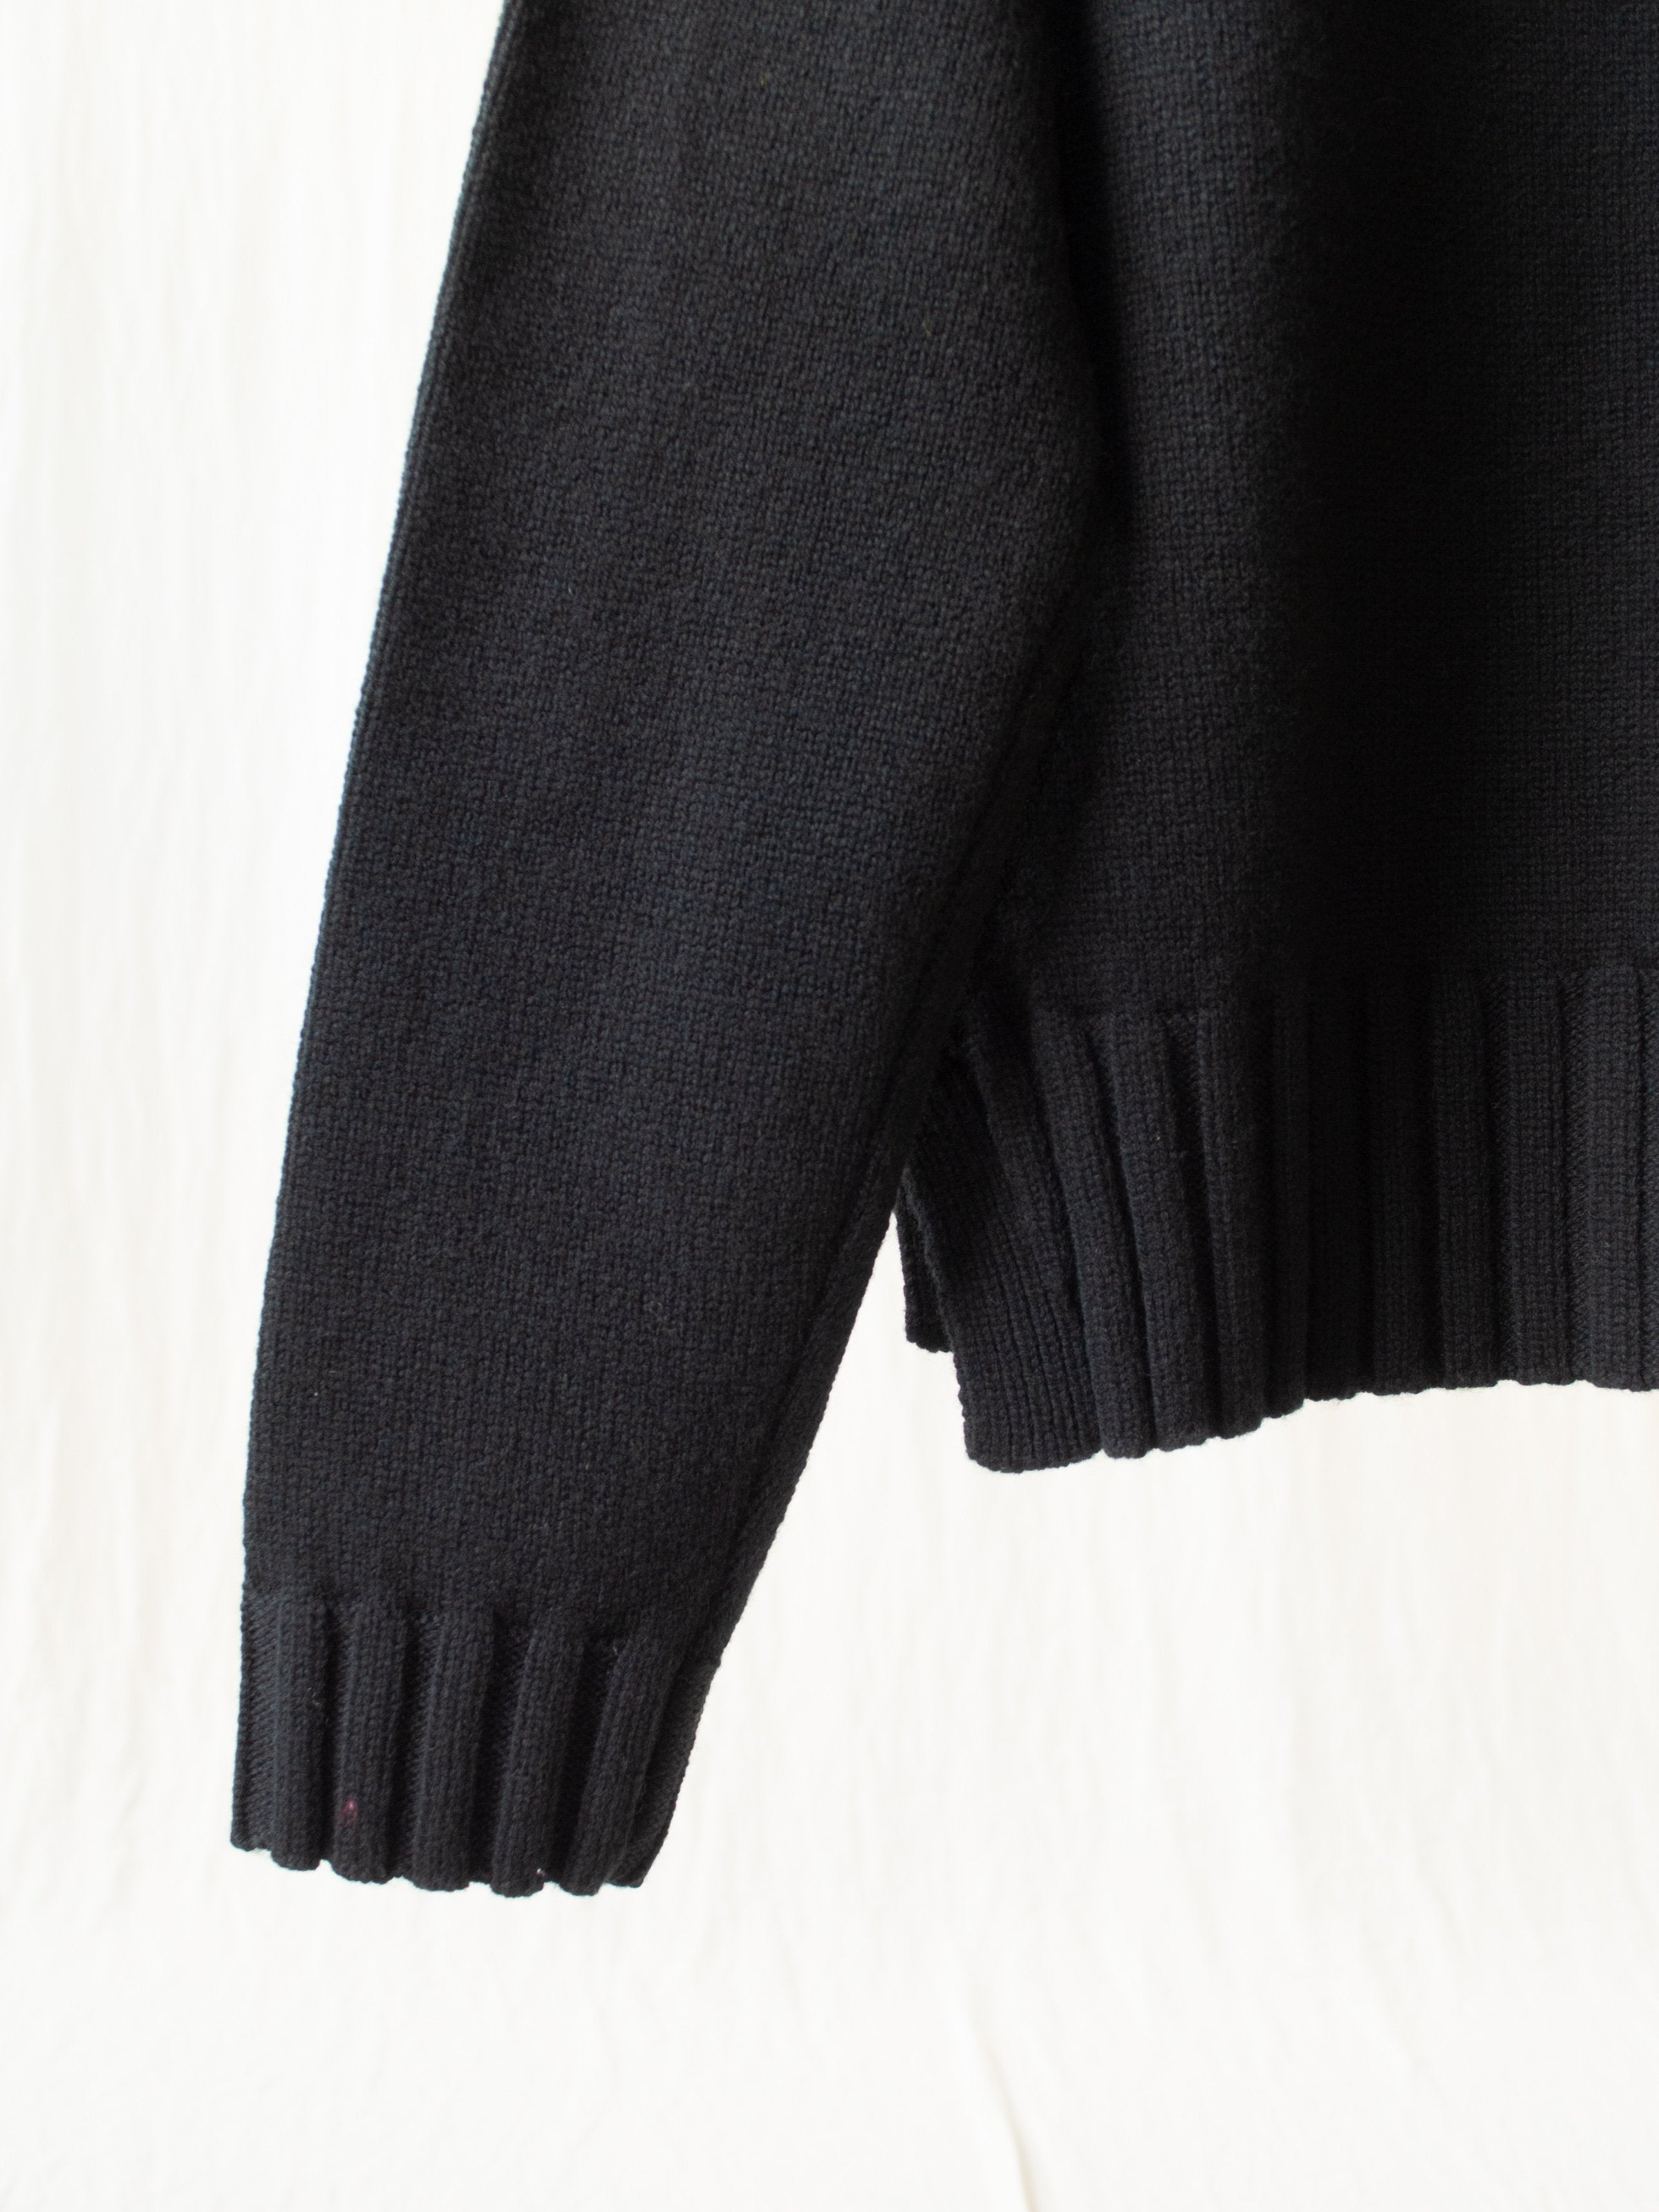 Namu Shop - Studio Nicholson Nieto English Lambswool Split Knit - Black